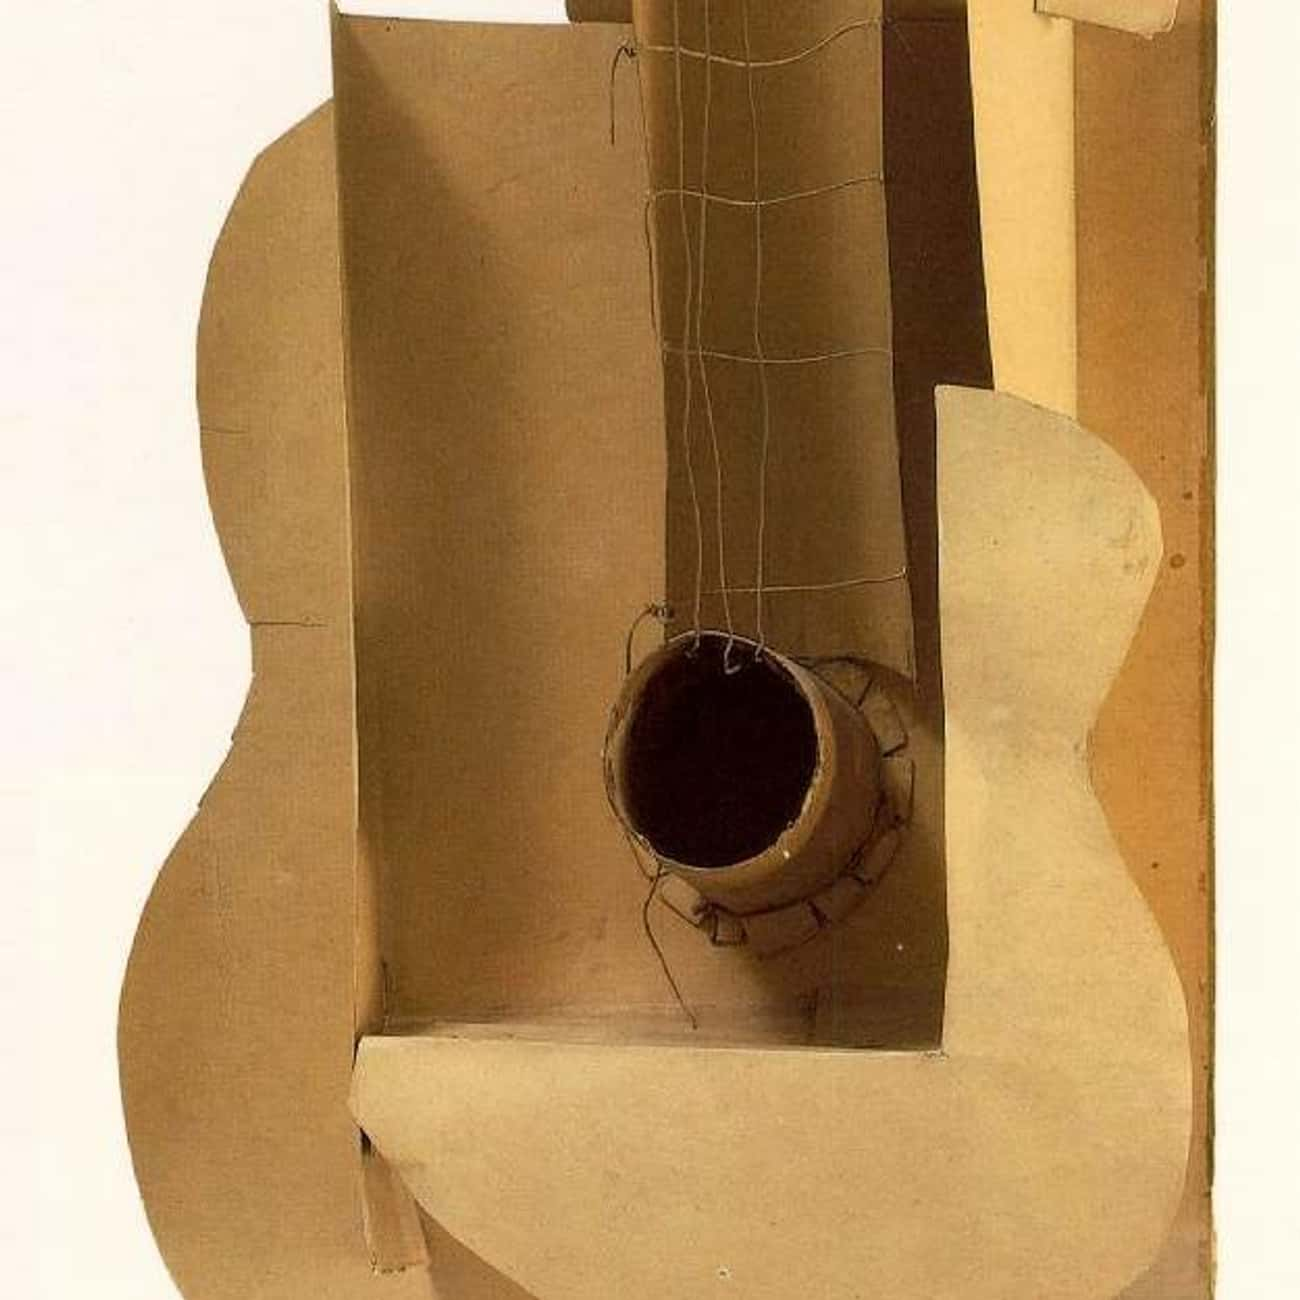 Maquette for Guitar is listed (or ranked) 3 on the list Famous Pablo Picasso Sculptures